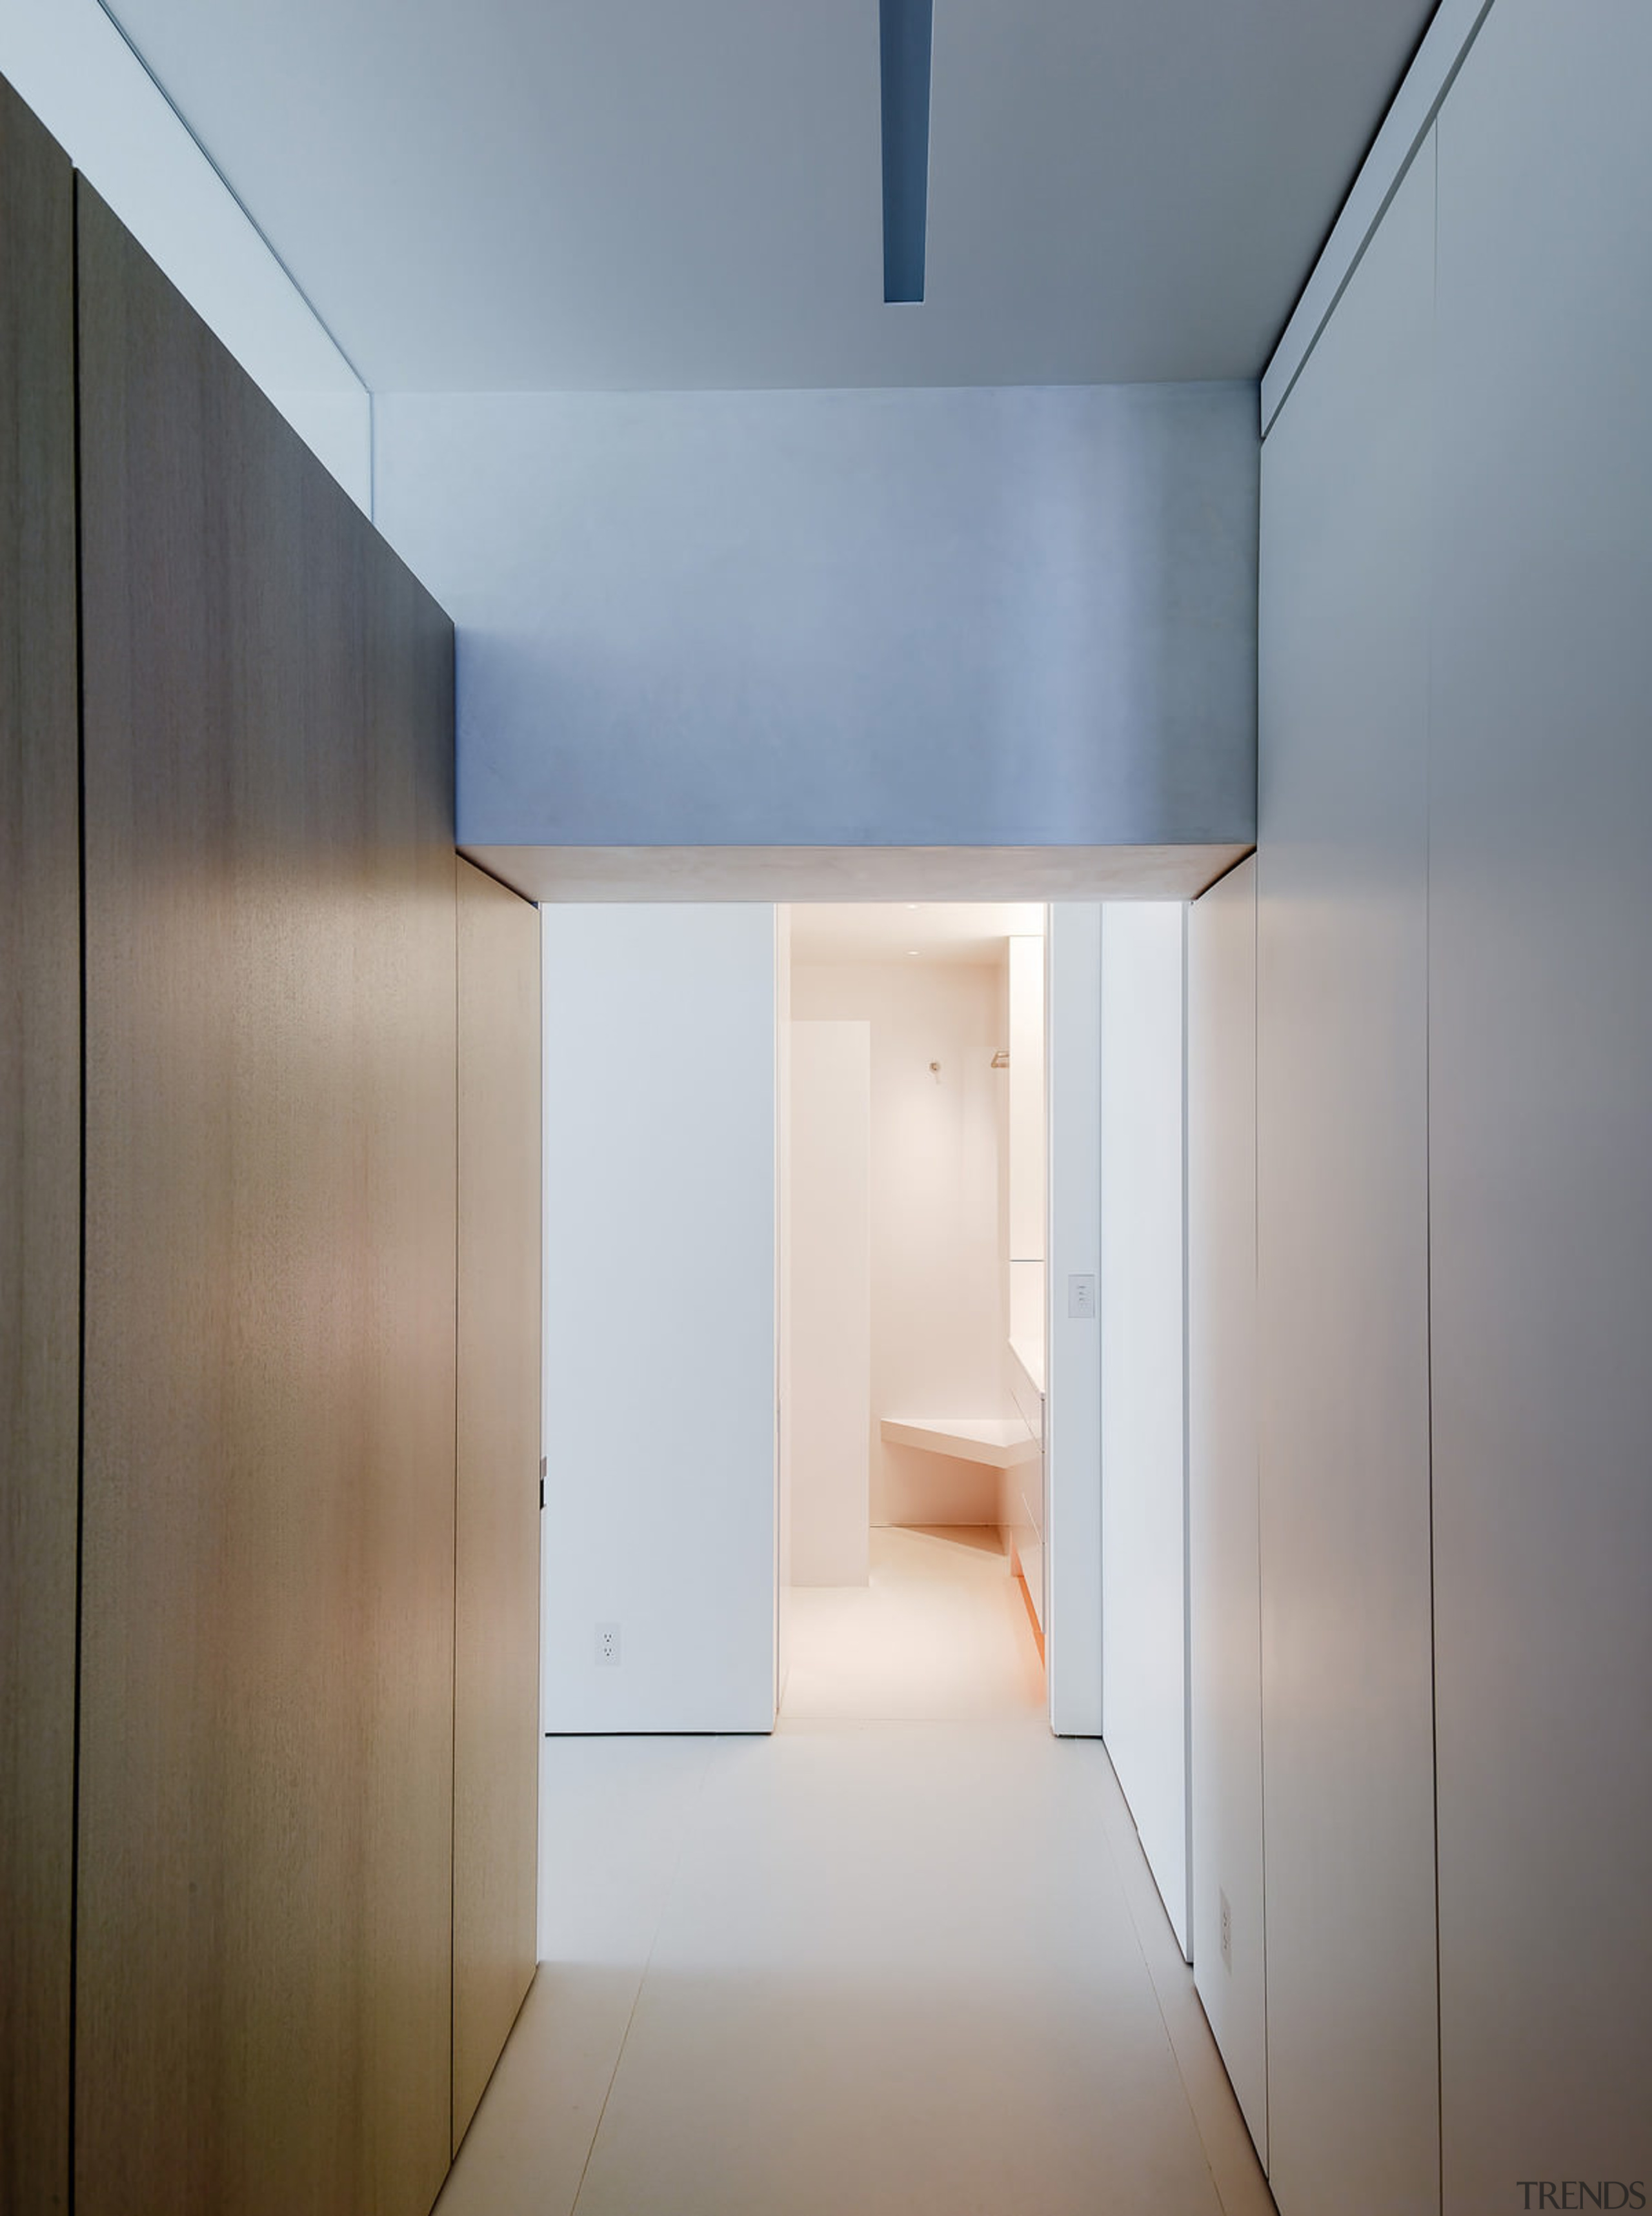 Looking down into the bathroom - Looking down architecture, ceiling, daylighting, home, house, interior design, product design, property, real estate, gray